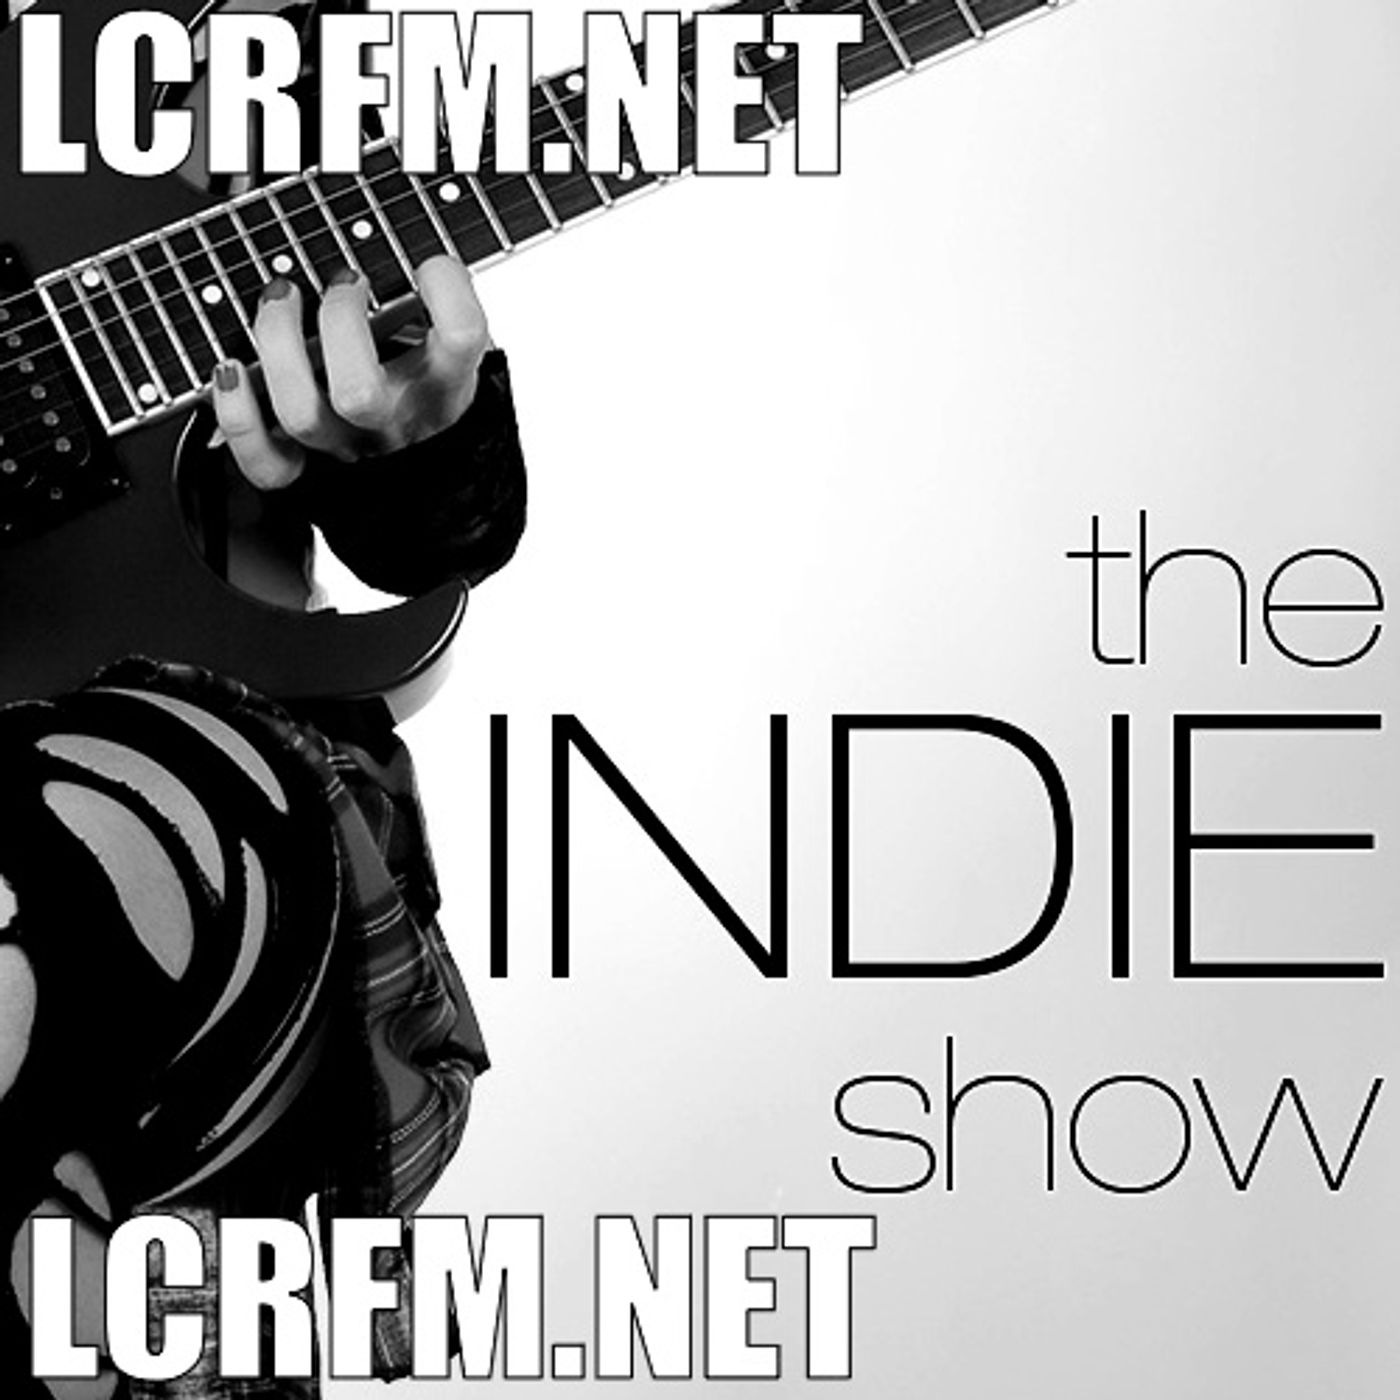 The Indie Show... ON LCRFM The London Calling Radio Show ... LIVE from LONDON... @ 8PM:GMT 12PM:PST and 3PM:EST